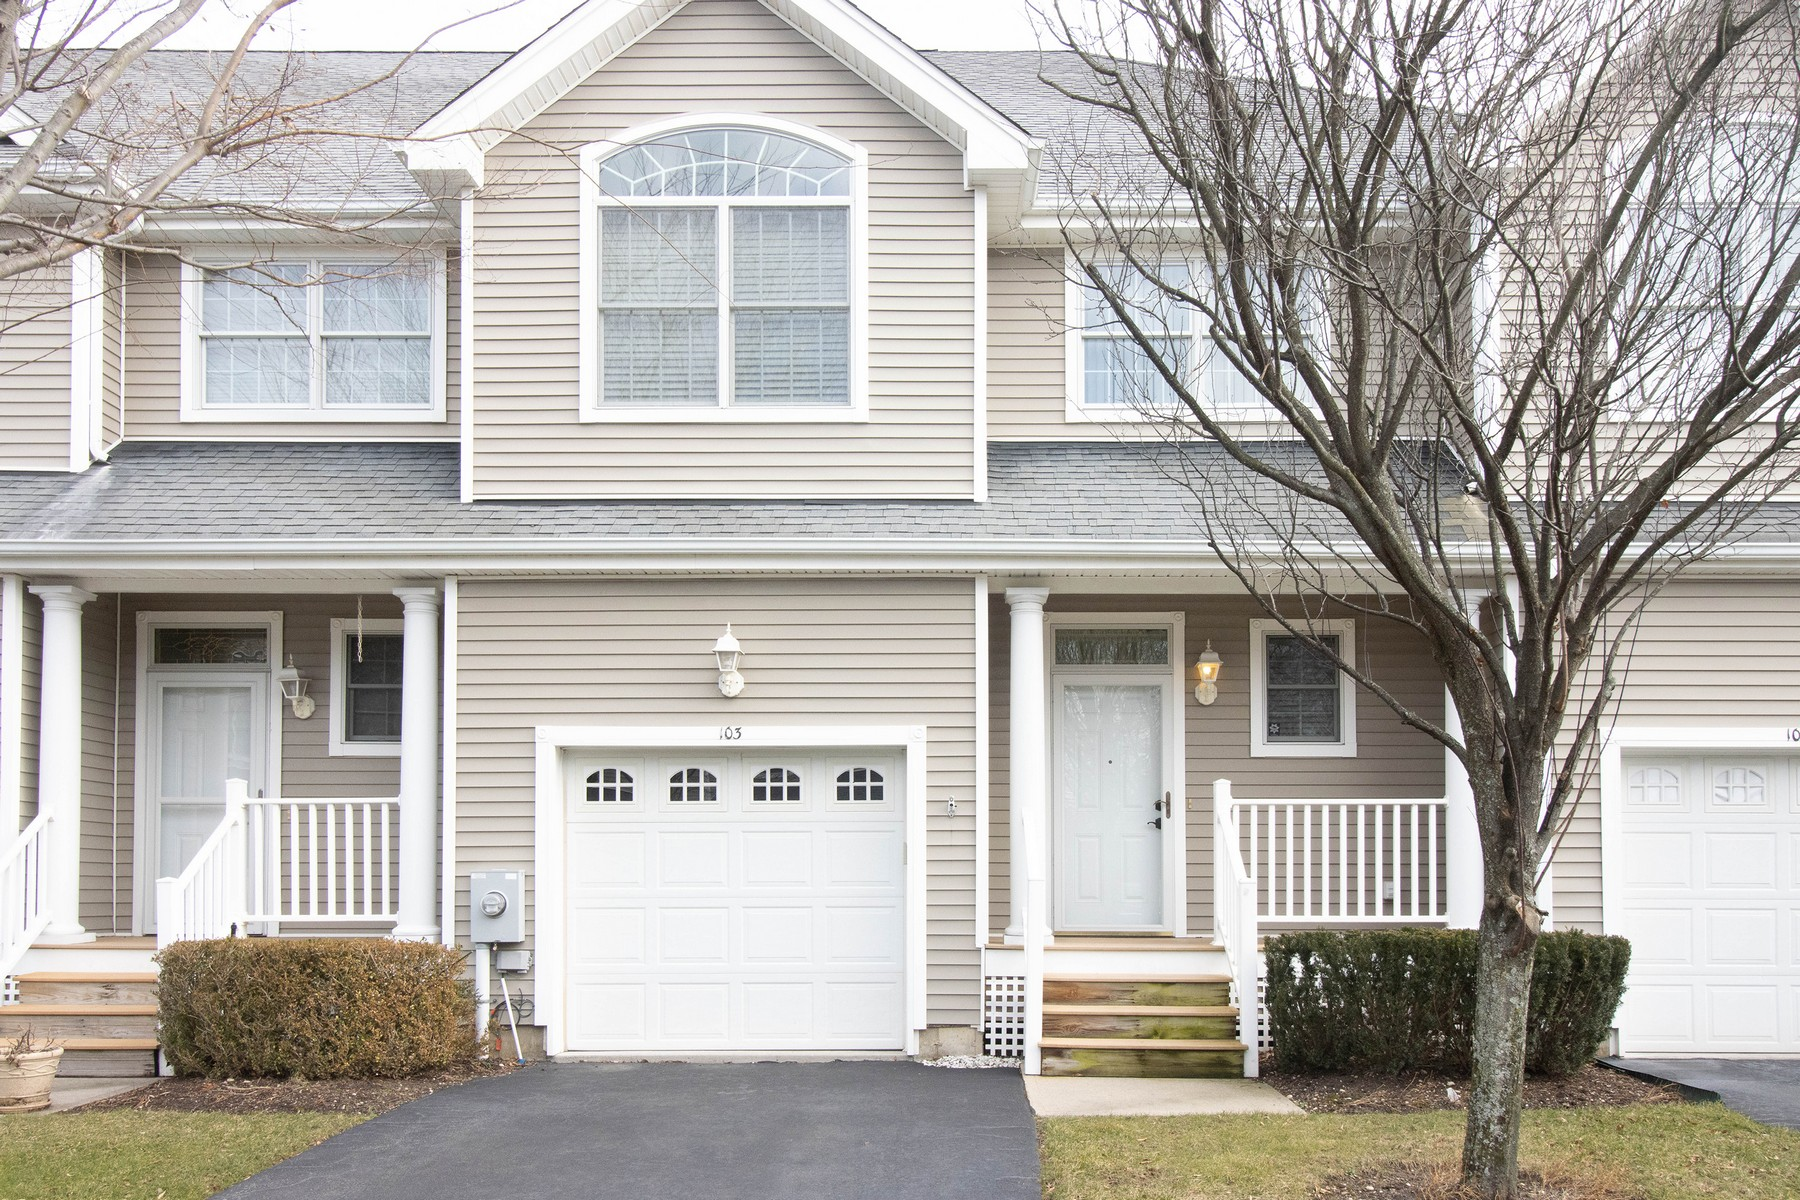 Condominiums for Sale at Setauket 103 Emilys Way Setauket, New York 11733 United States